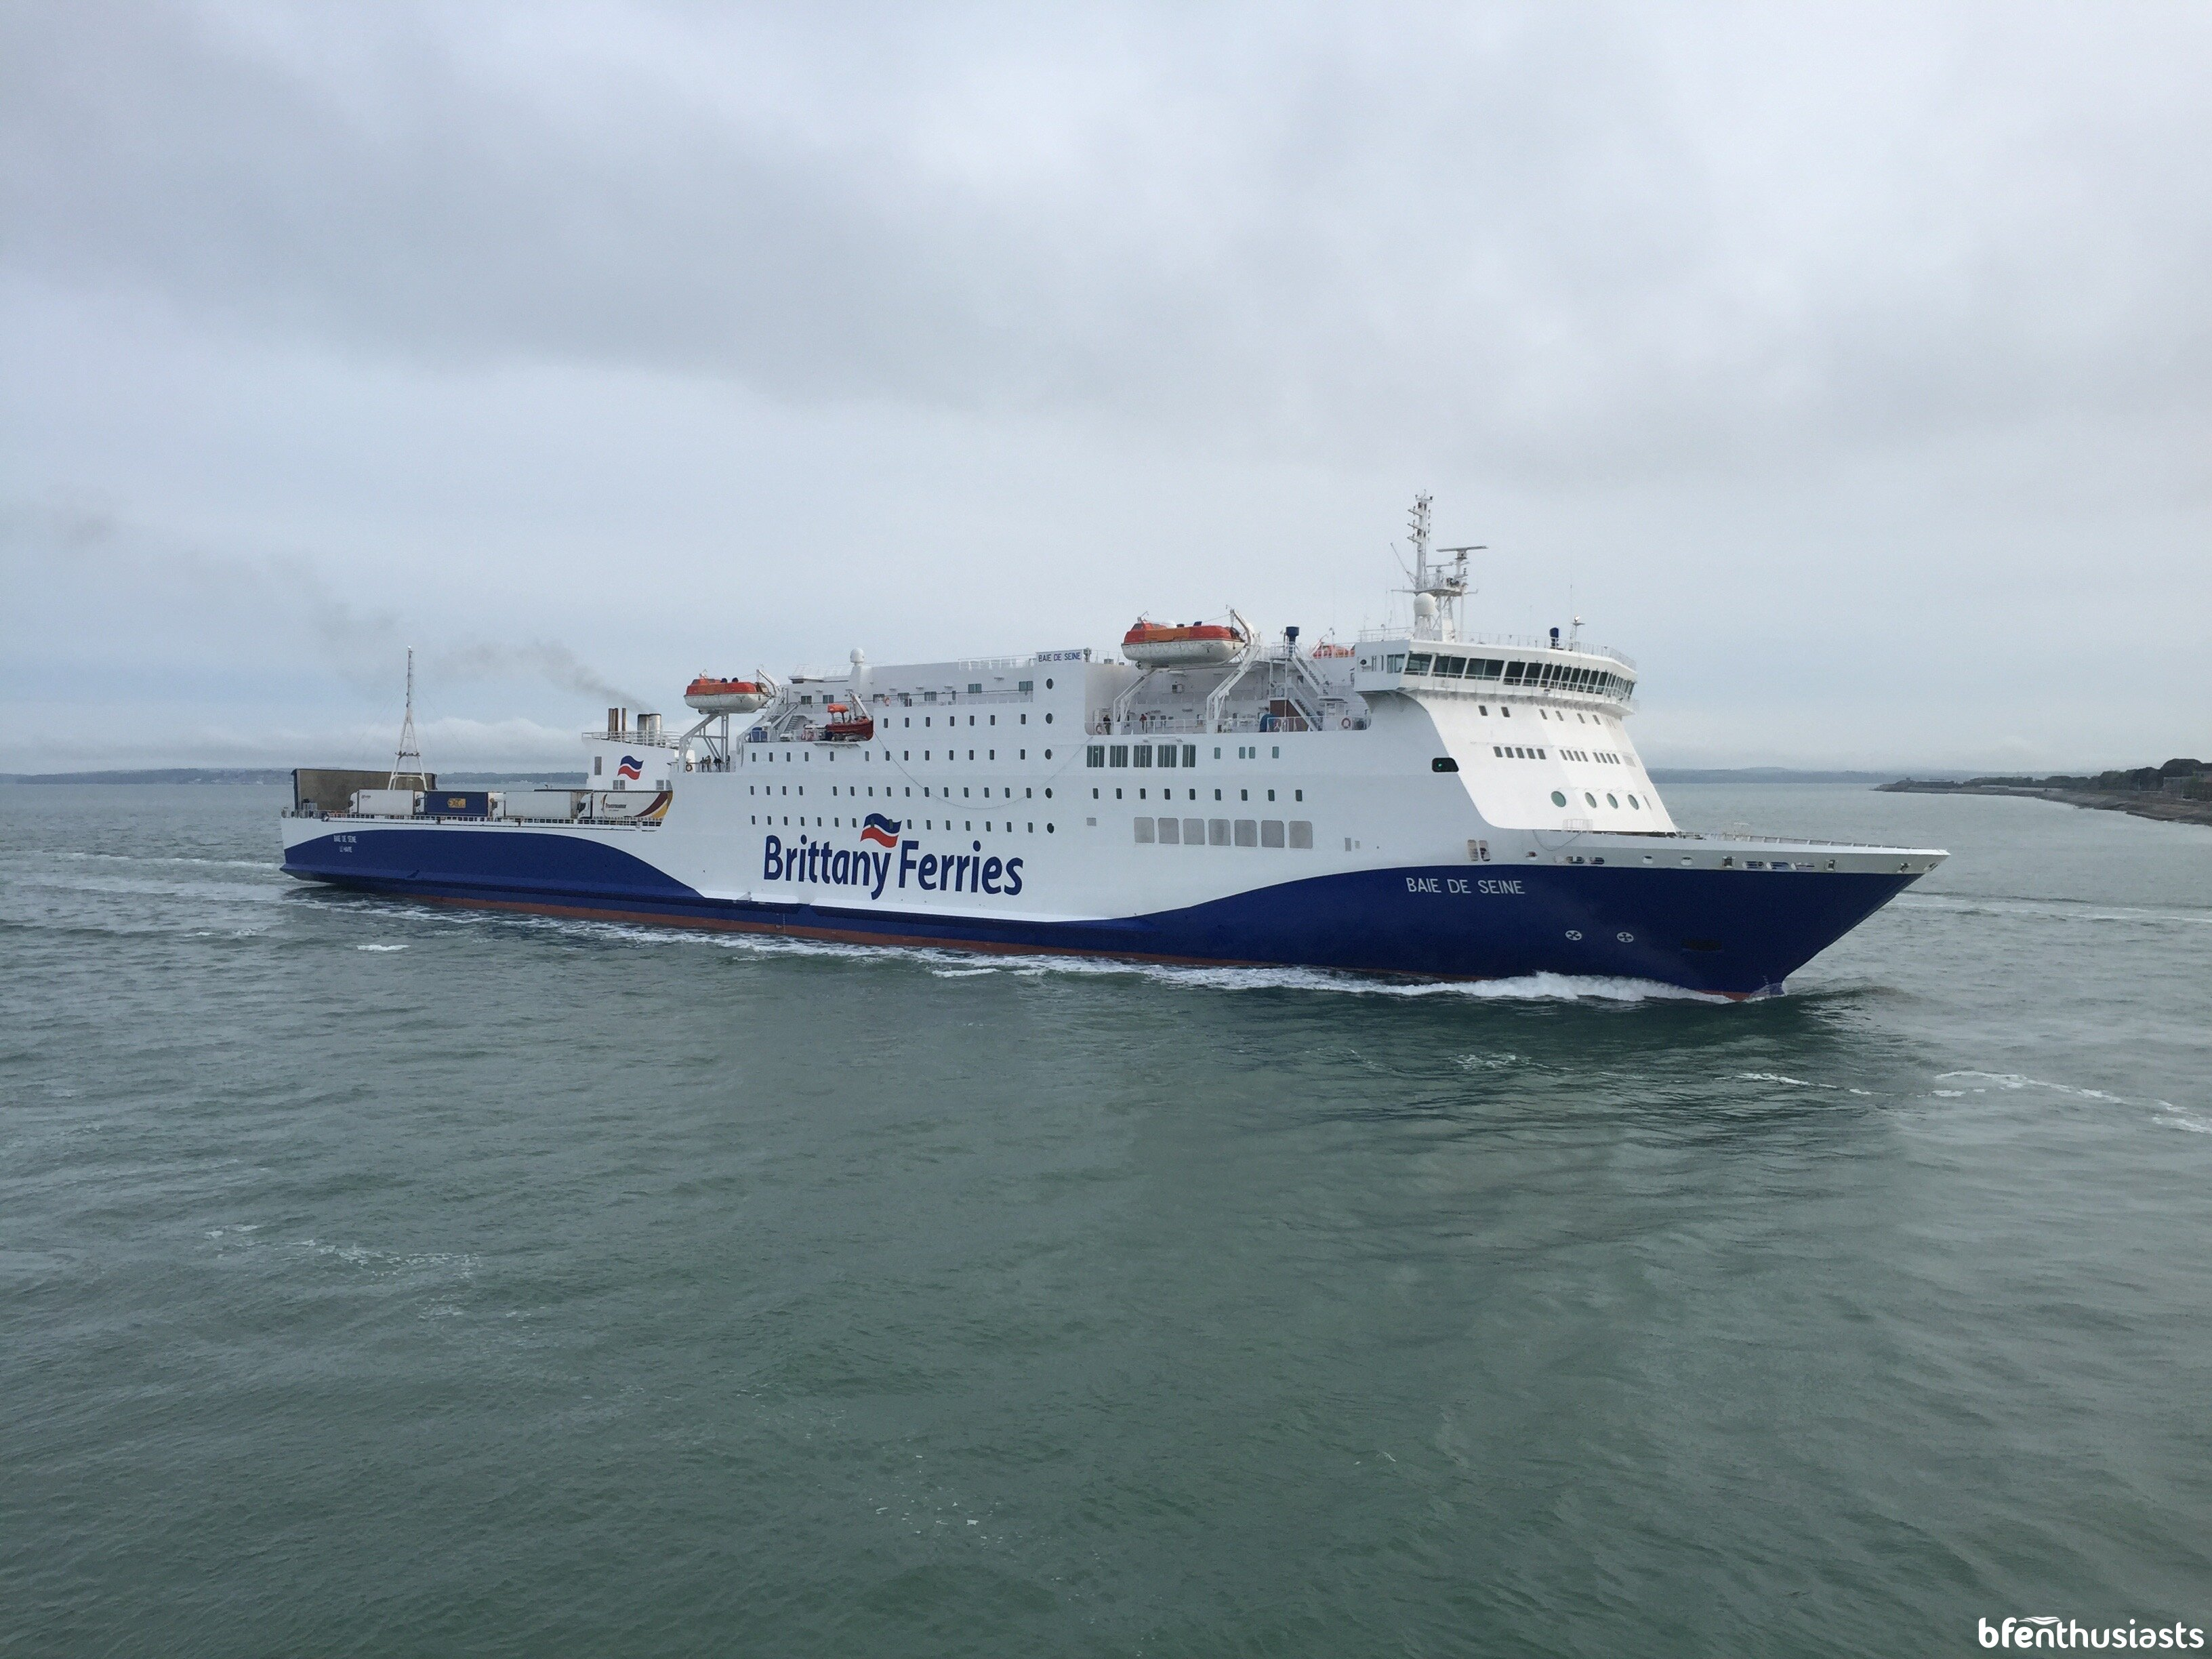 Arrival into Portsmouth from Bilbao.